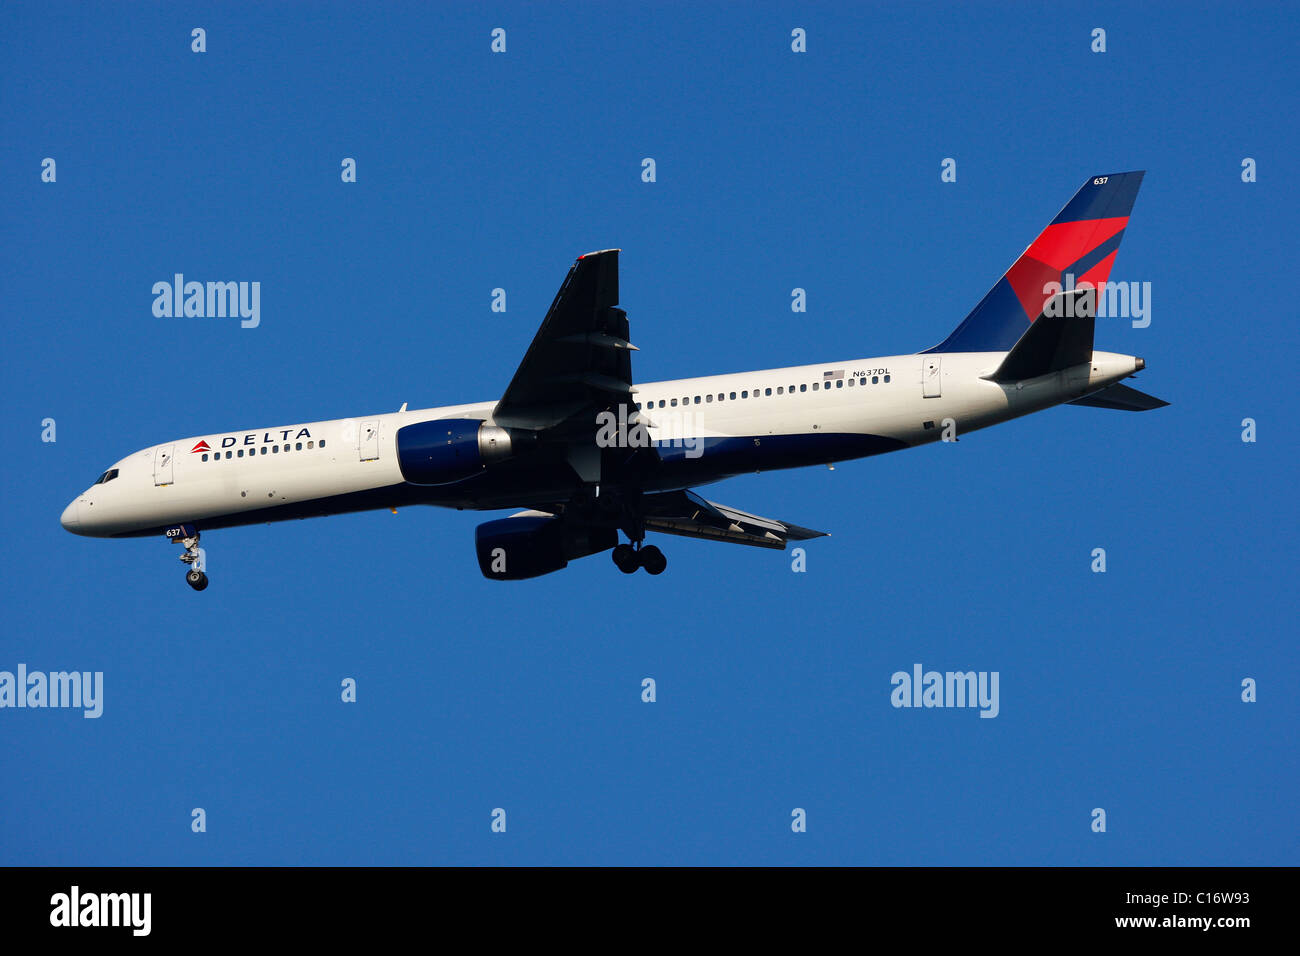 Delta Airlines jet plane in the air - Stock Image